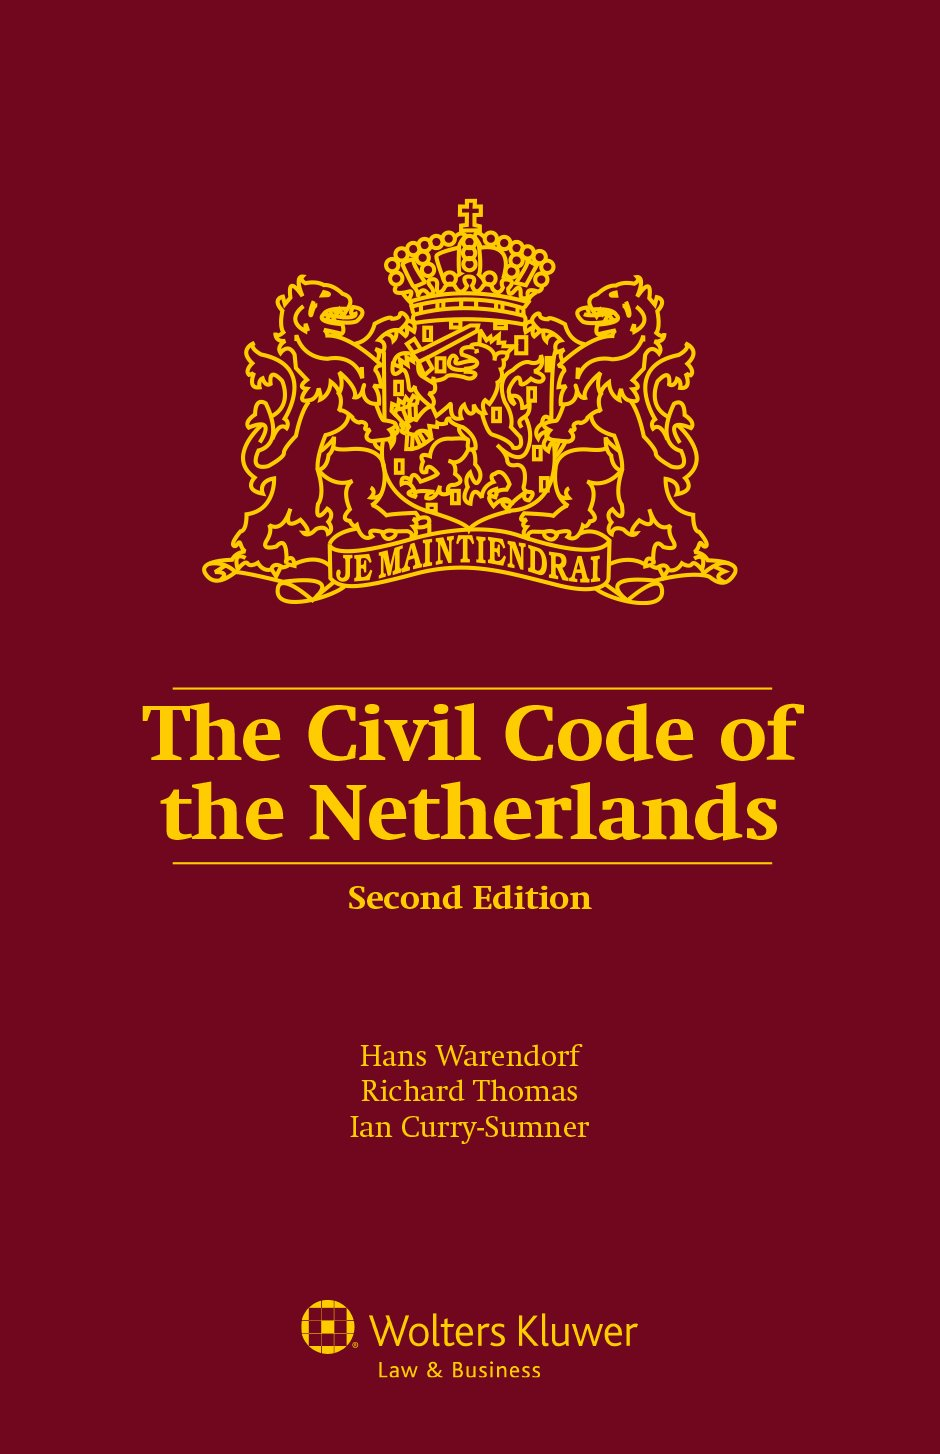 Download The Civil Code Of The Netherlands 